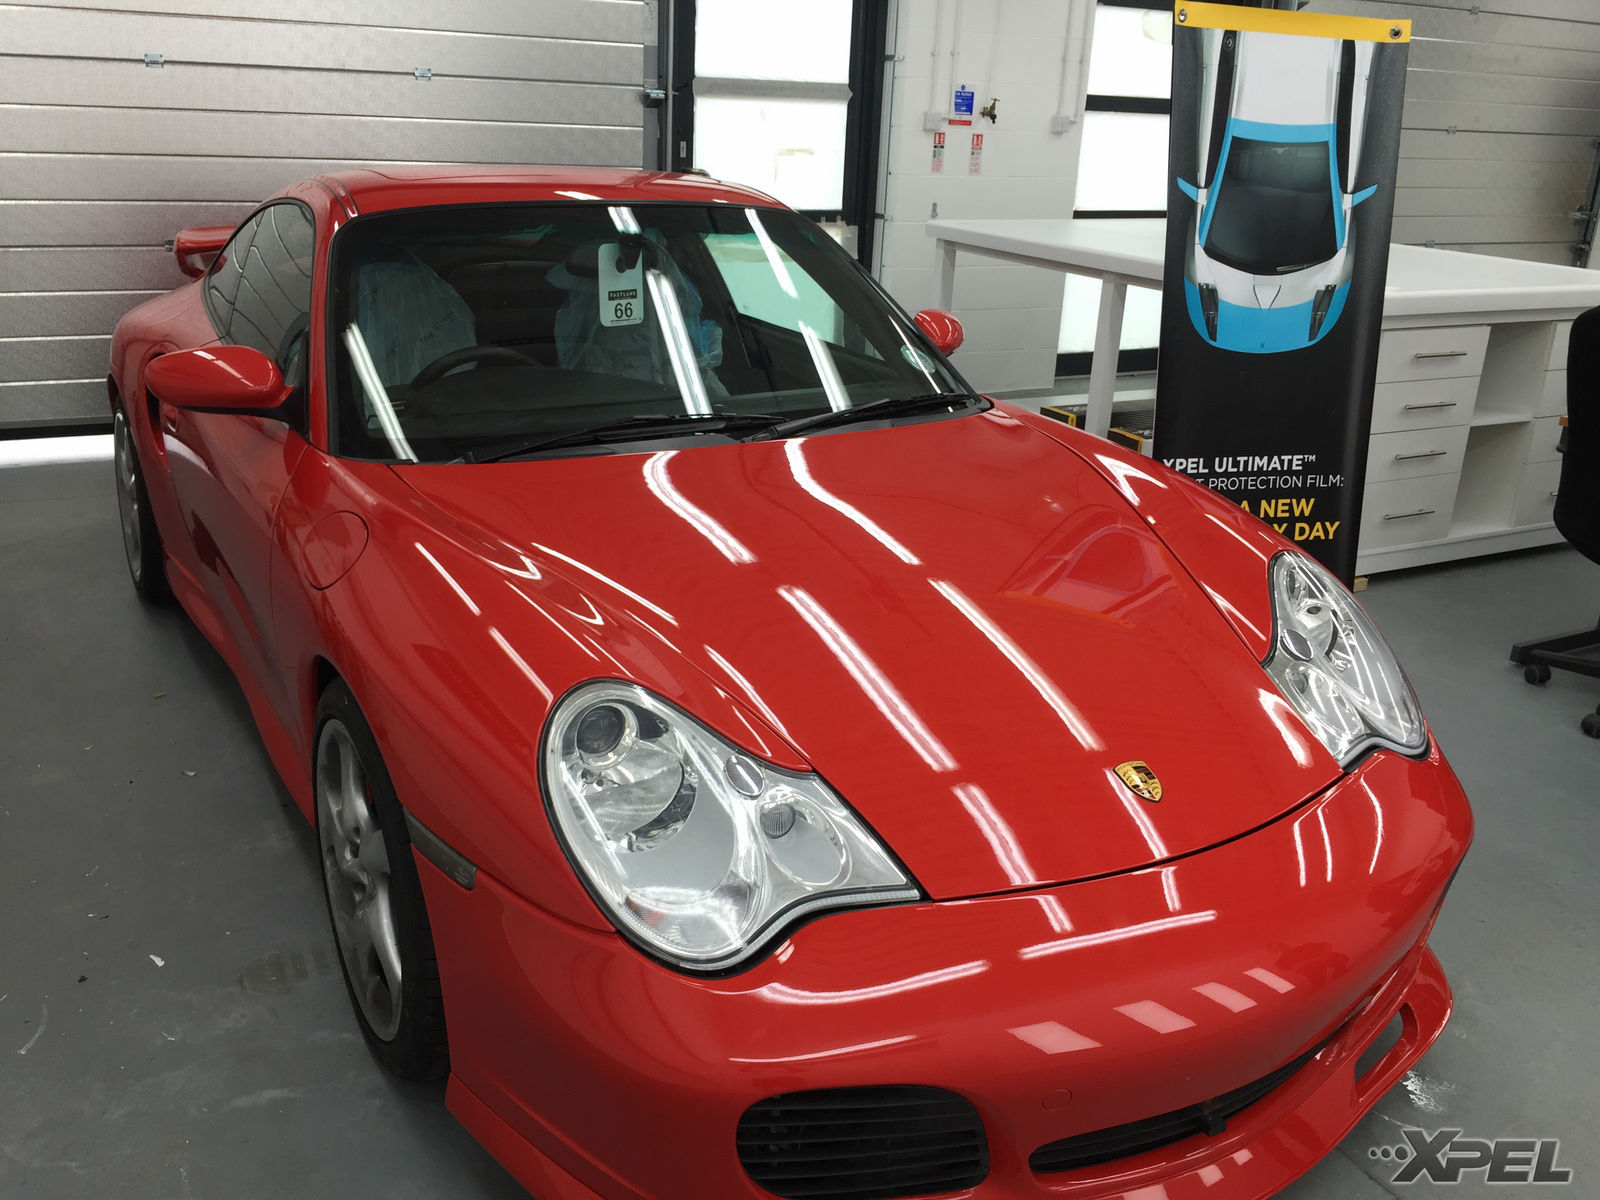 | Porsche 911 protected with XPEL ULTIMATE